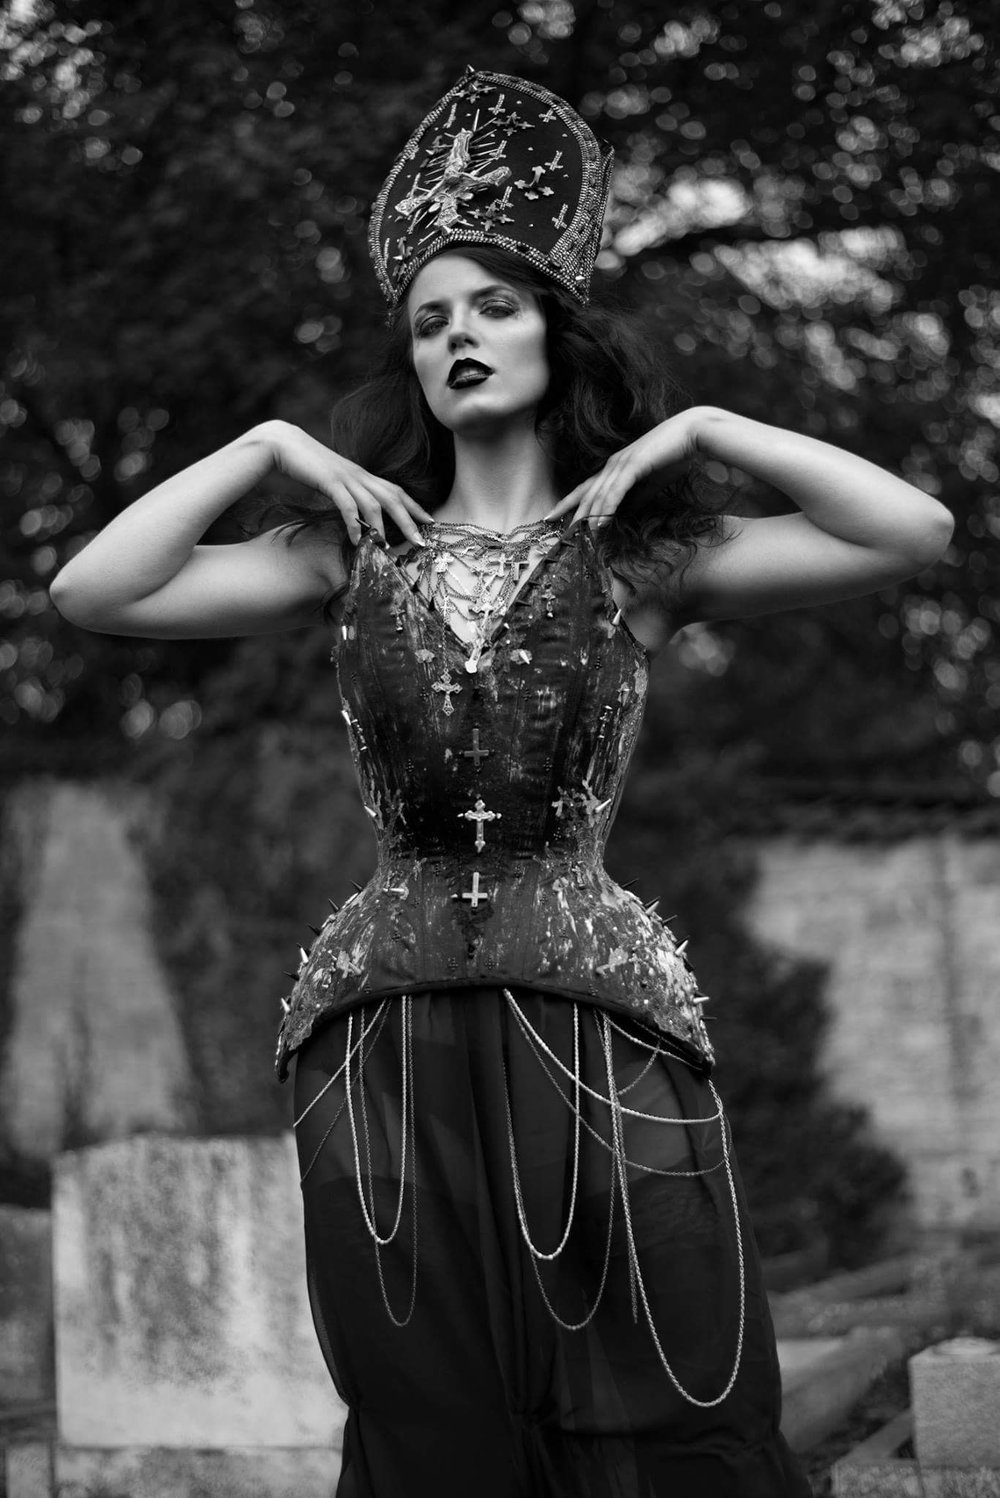 Magdalena Corset Photographer: Photography by Liv Free Model: Indrija Kustov Headpiece: Creations by Liv Free Hair & MUA: Liv Free - Make Up & Hair Artist